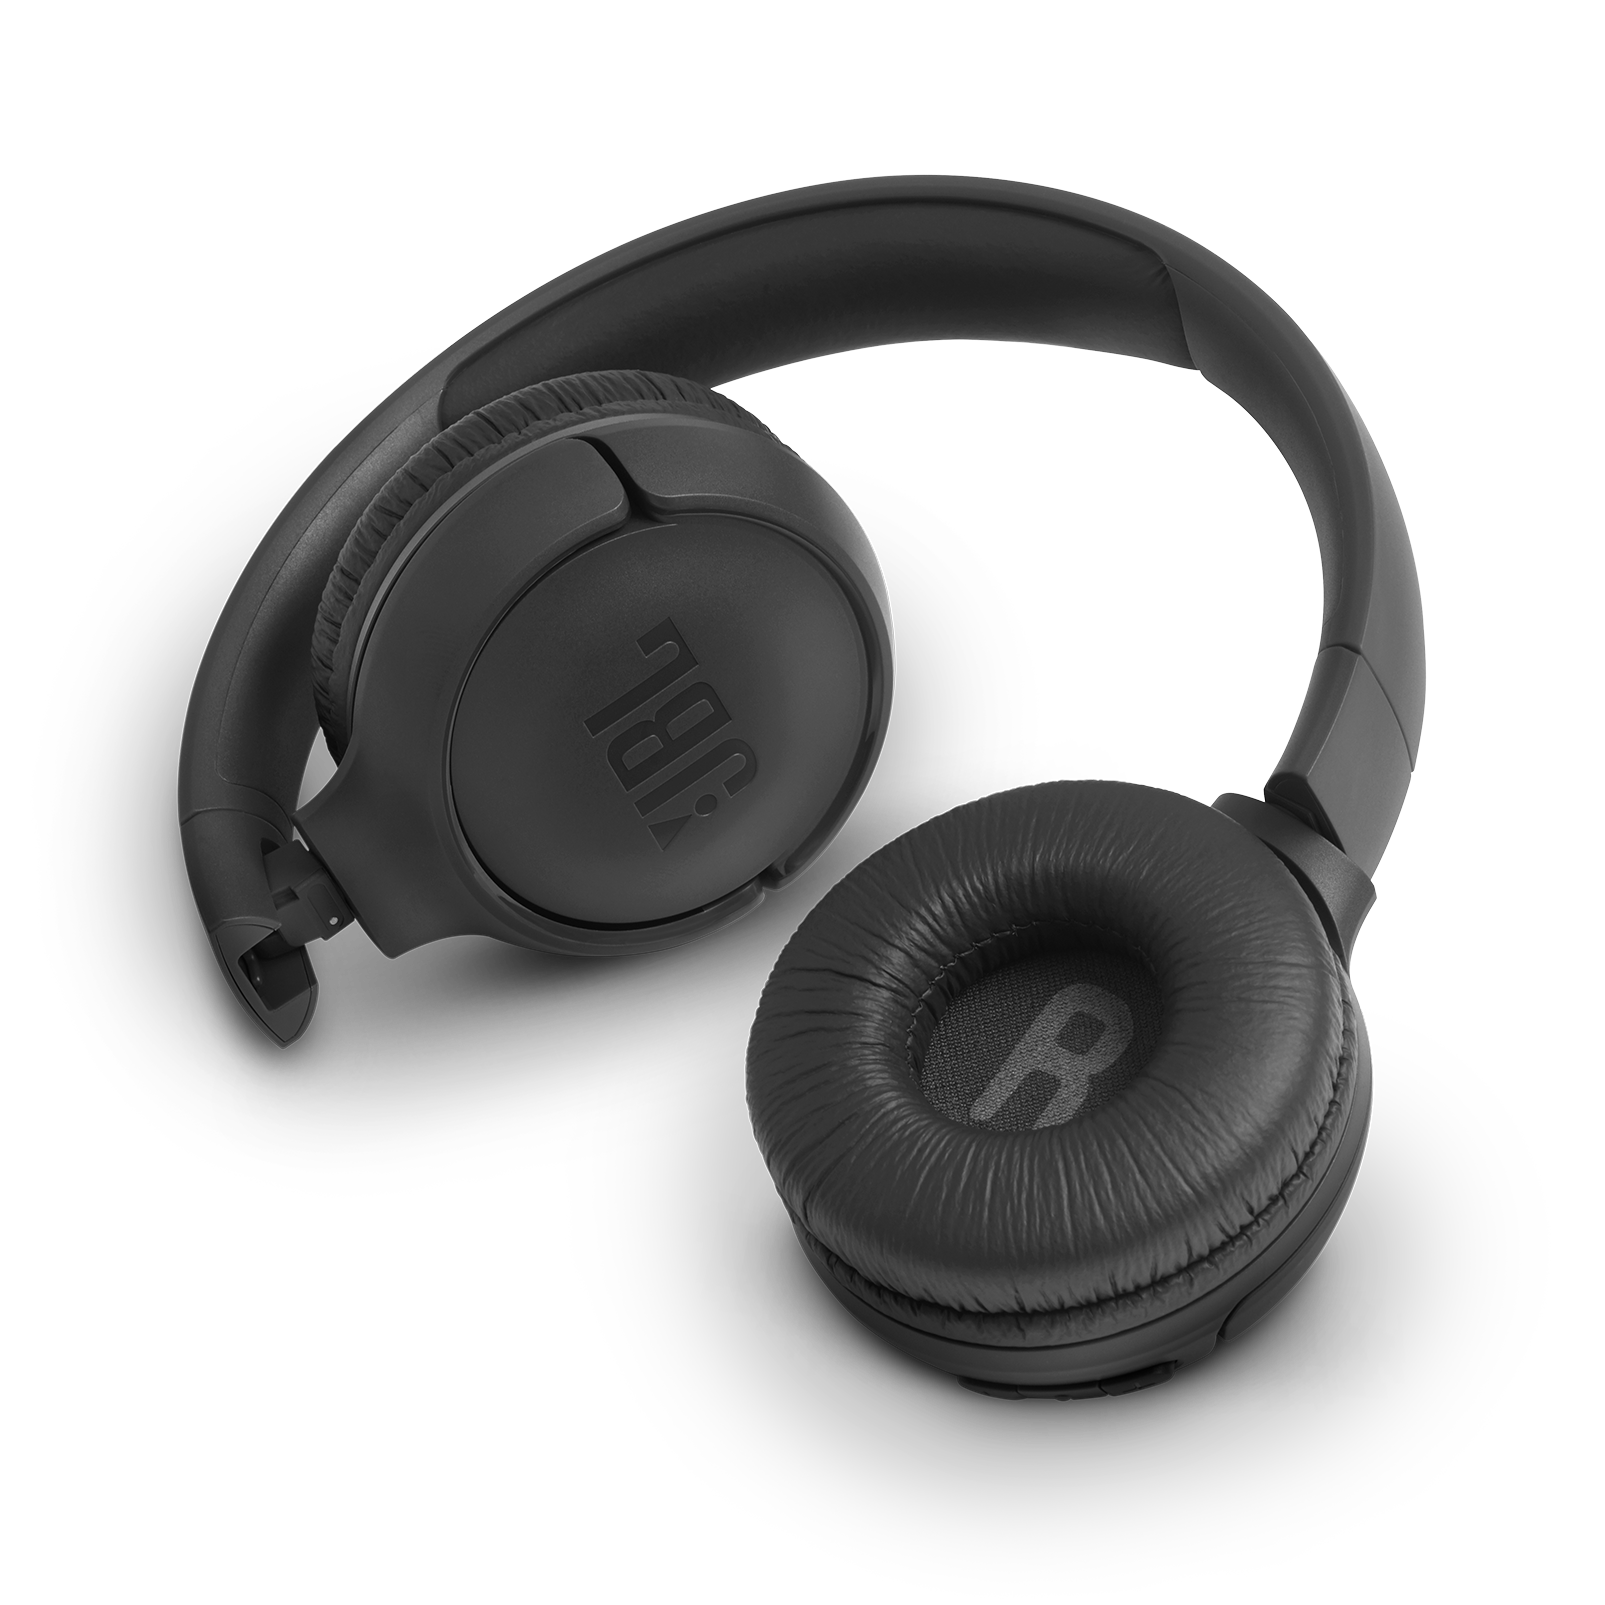 JBL TUNE 560BT - Black - Wireless on-ear headphones - Detailshot 1